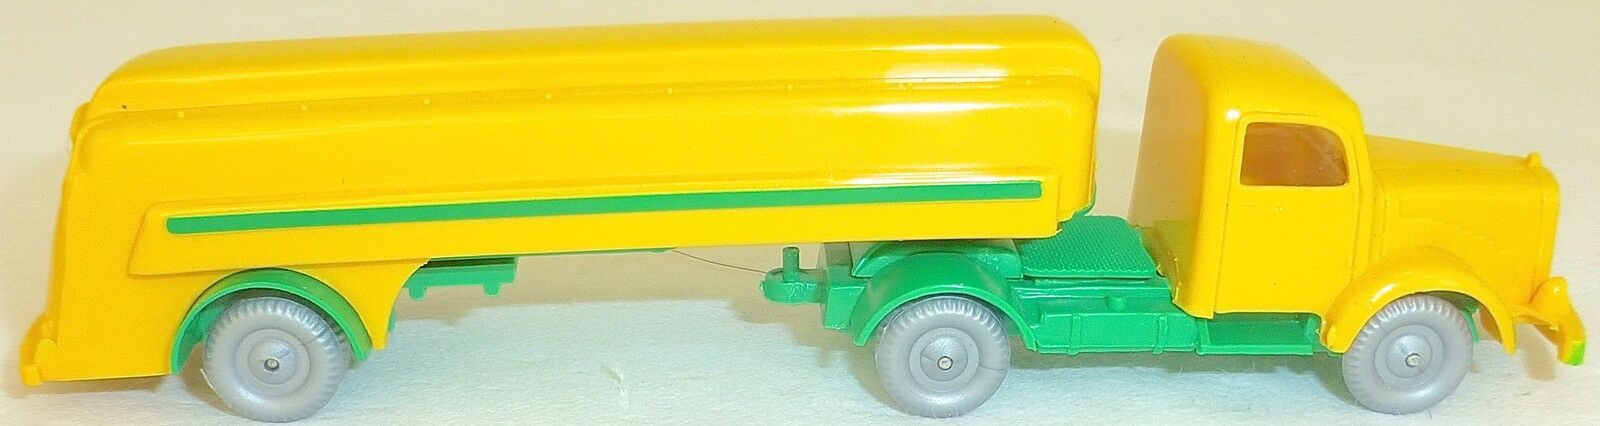 Bp Trailer Truck Mercedes Imu 1:87 H0 Å Cars